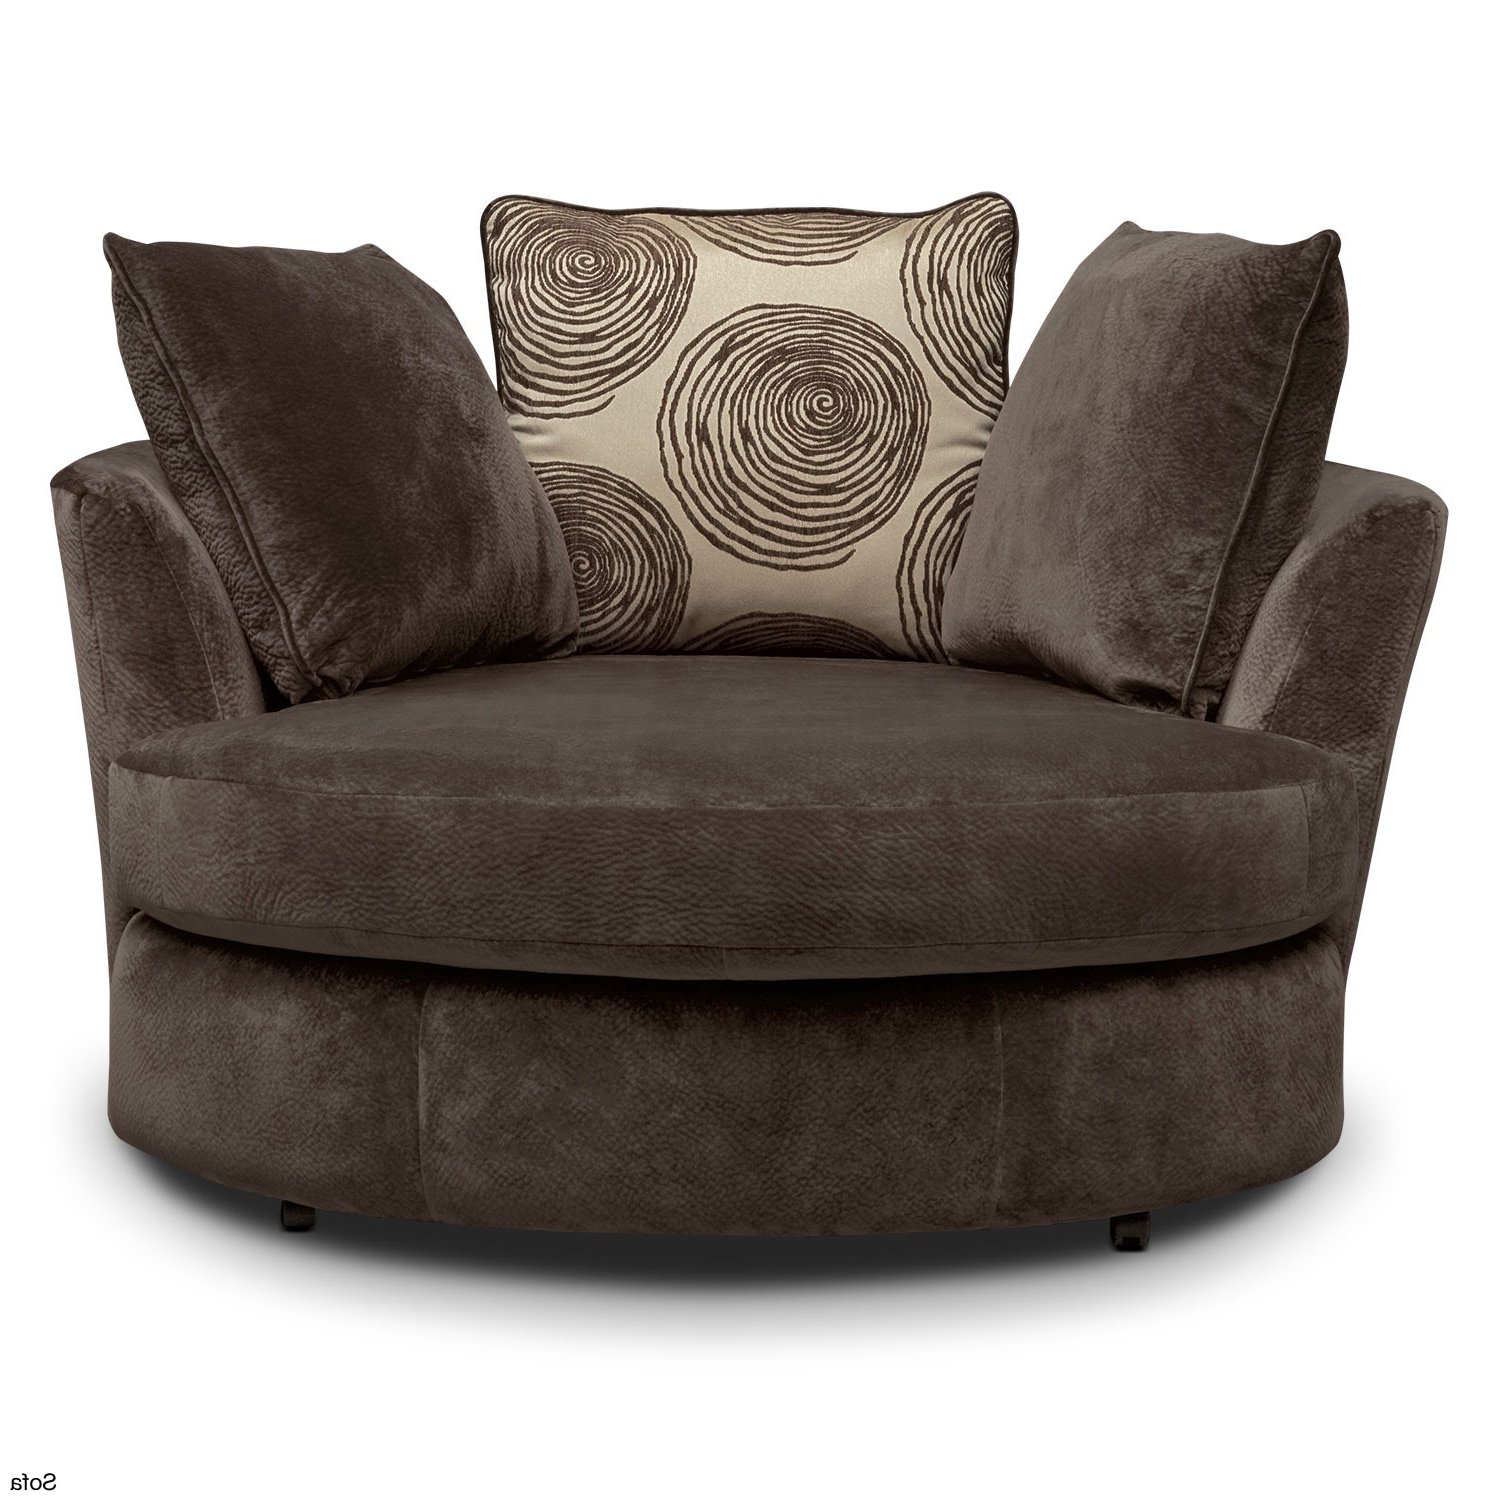 Snuggle Sofas Inside Favorite Leather Swivel Chair Couch Grey Snuggle Sofa And Cuddle Full Size (View 3 of 20)